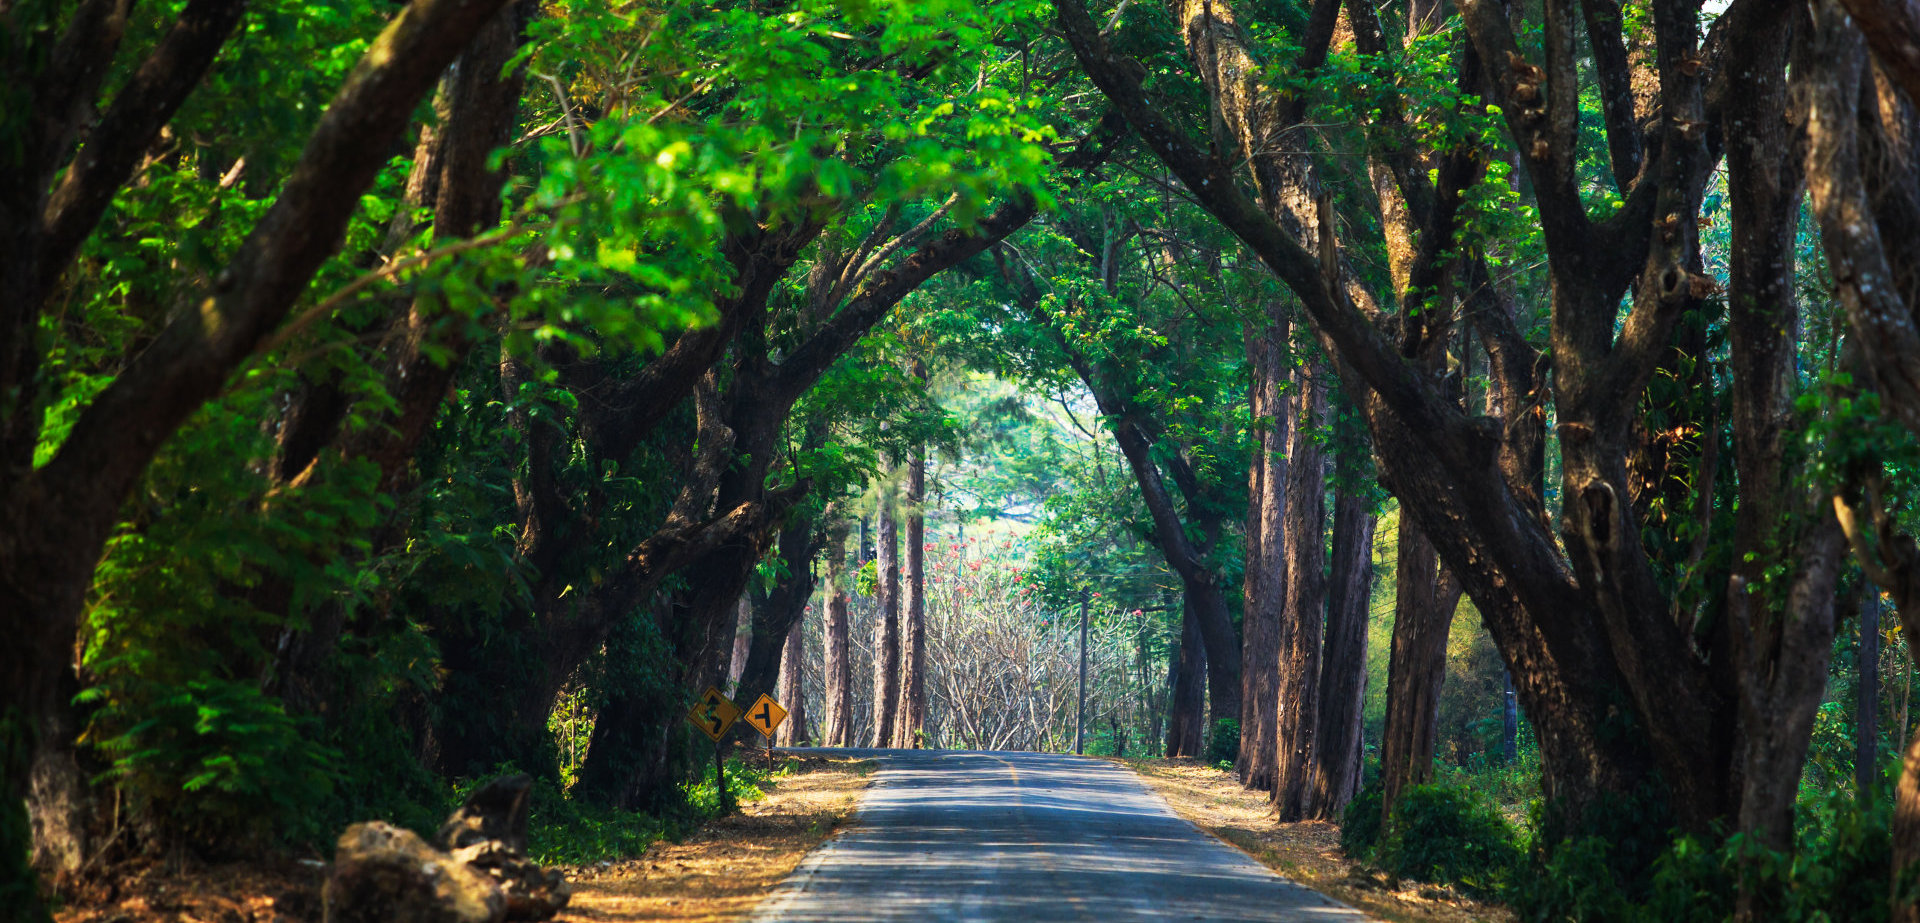 Beautiful street in covered with arched tree branches